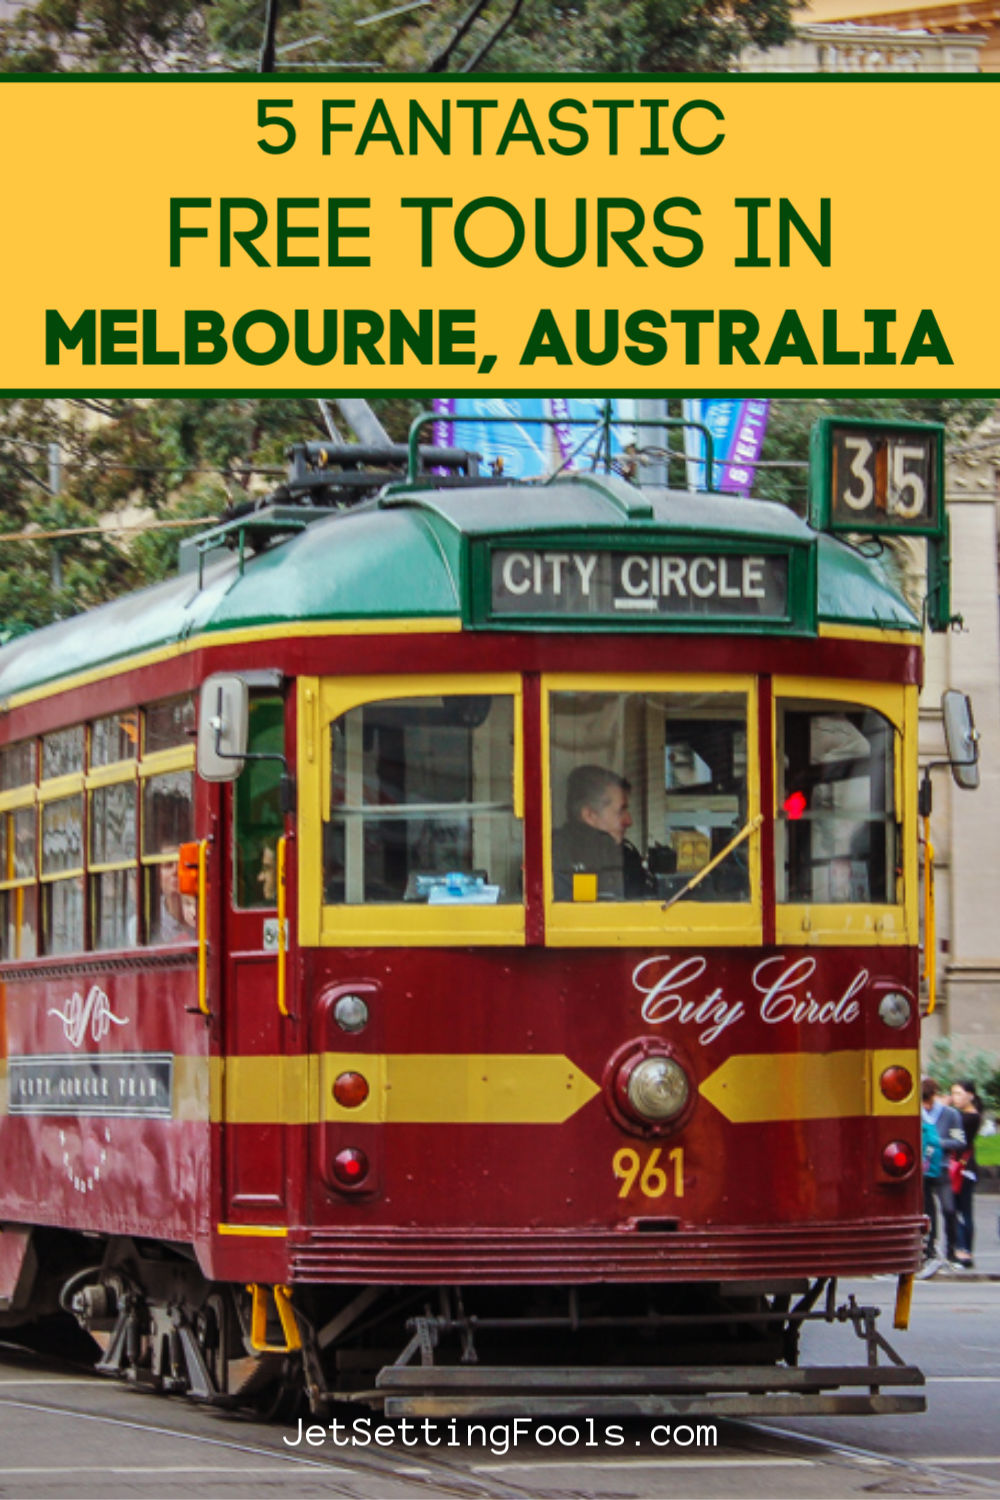 5 Free Tours in Melbourne, Australia by JetSettingFools.com